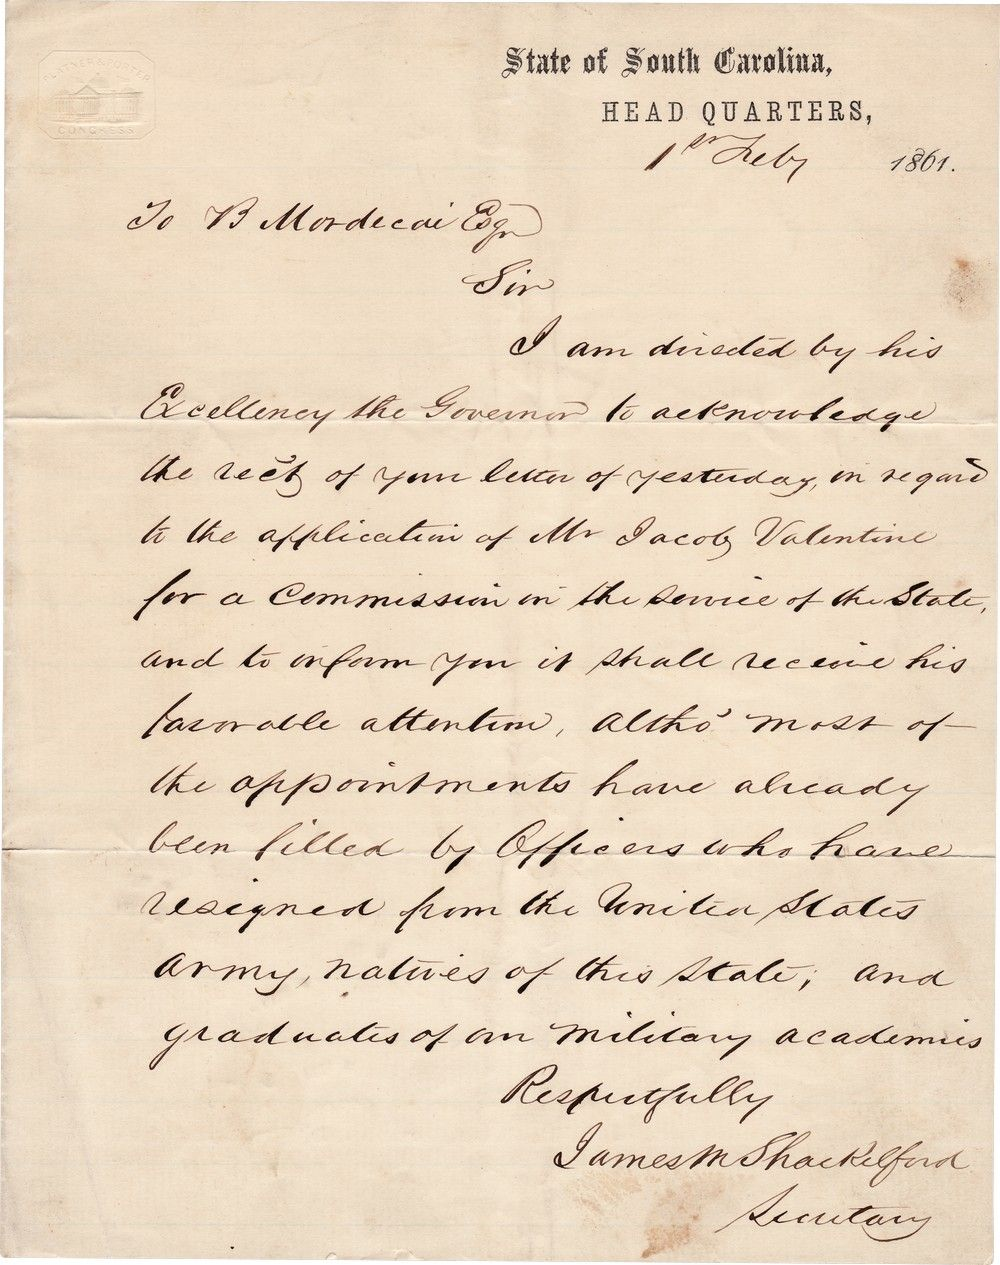 Jewish Confederates: Letter Regarding Benjamin Mordecai's Support of a Commission for Jacob Valentine